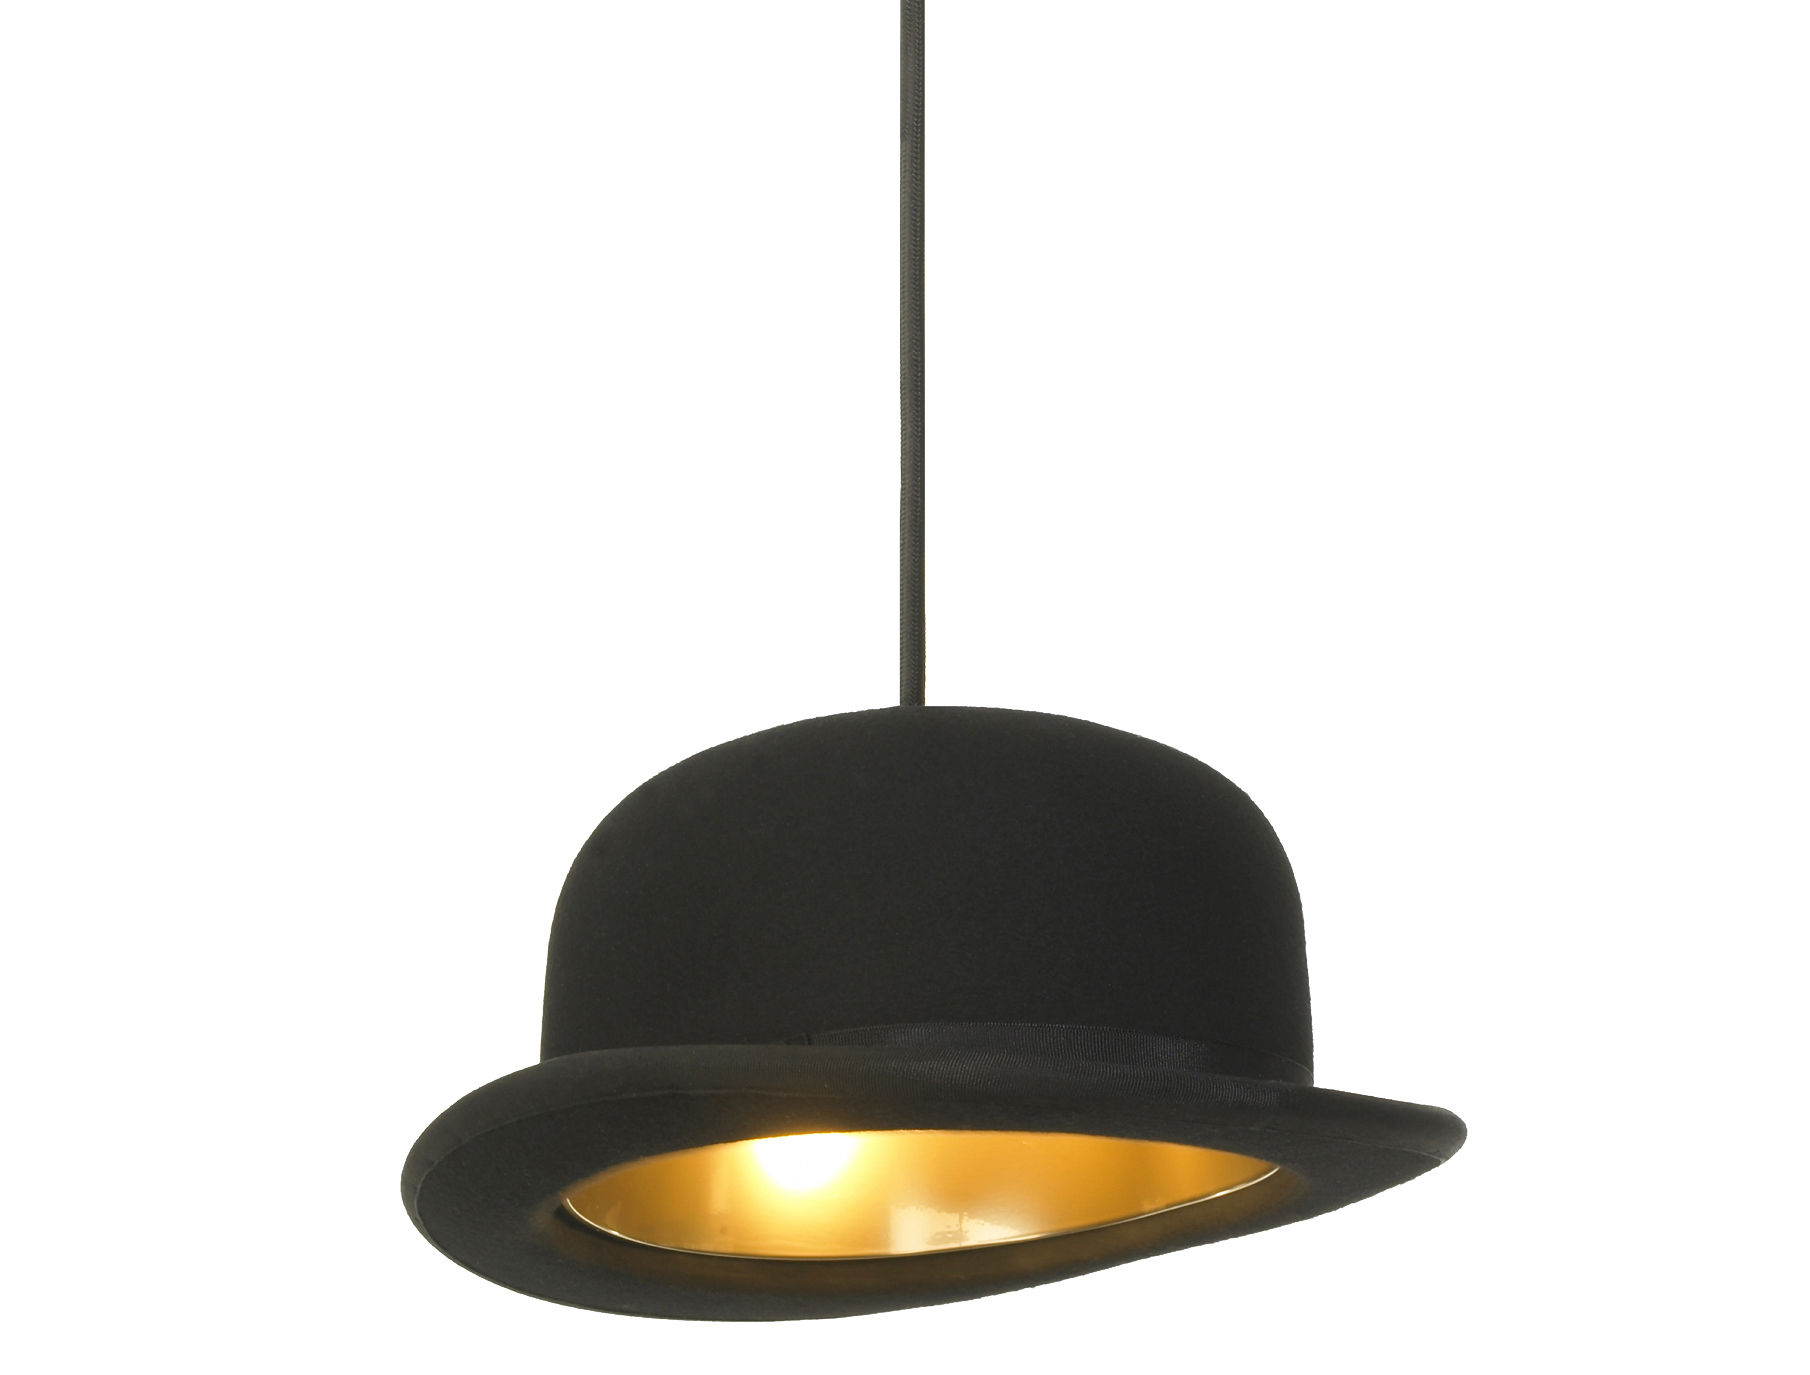 Lighting - Pendant Lighting - Jeeves Pendant by Innermost - Black bowler - Gold inside - Anodized aluminium, Felted wool